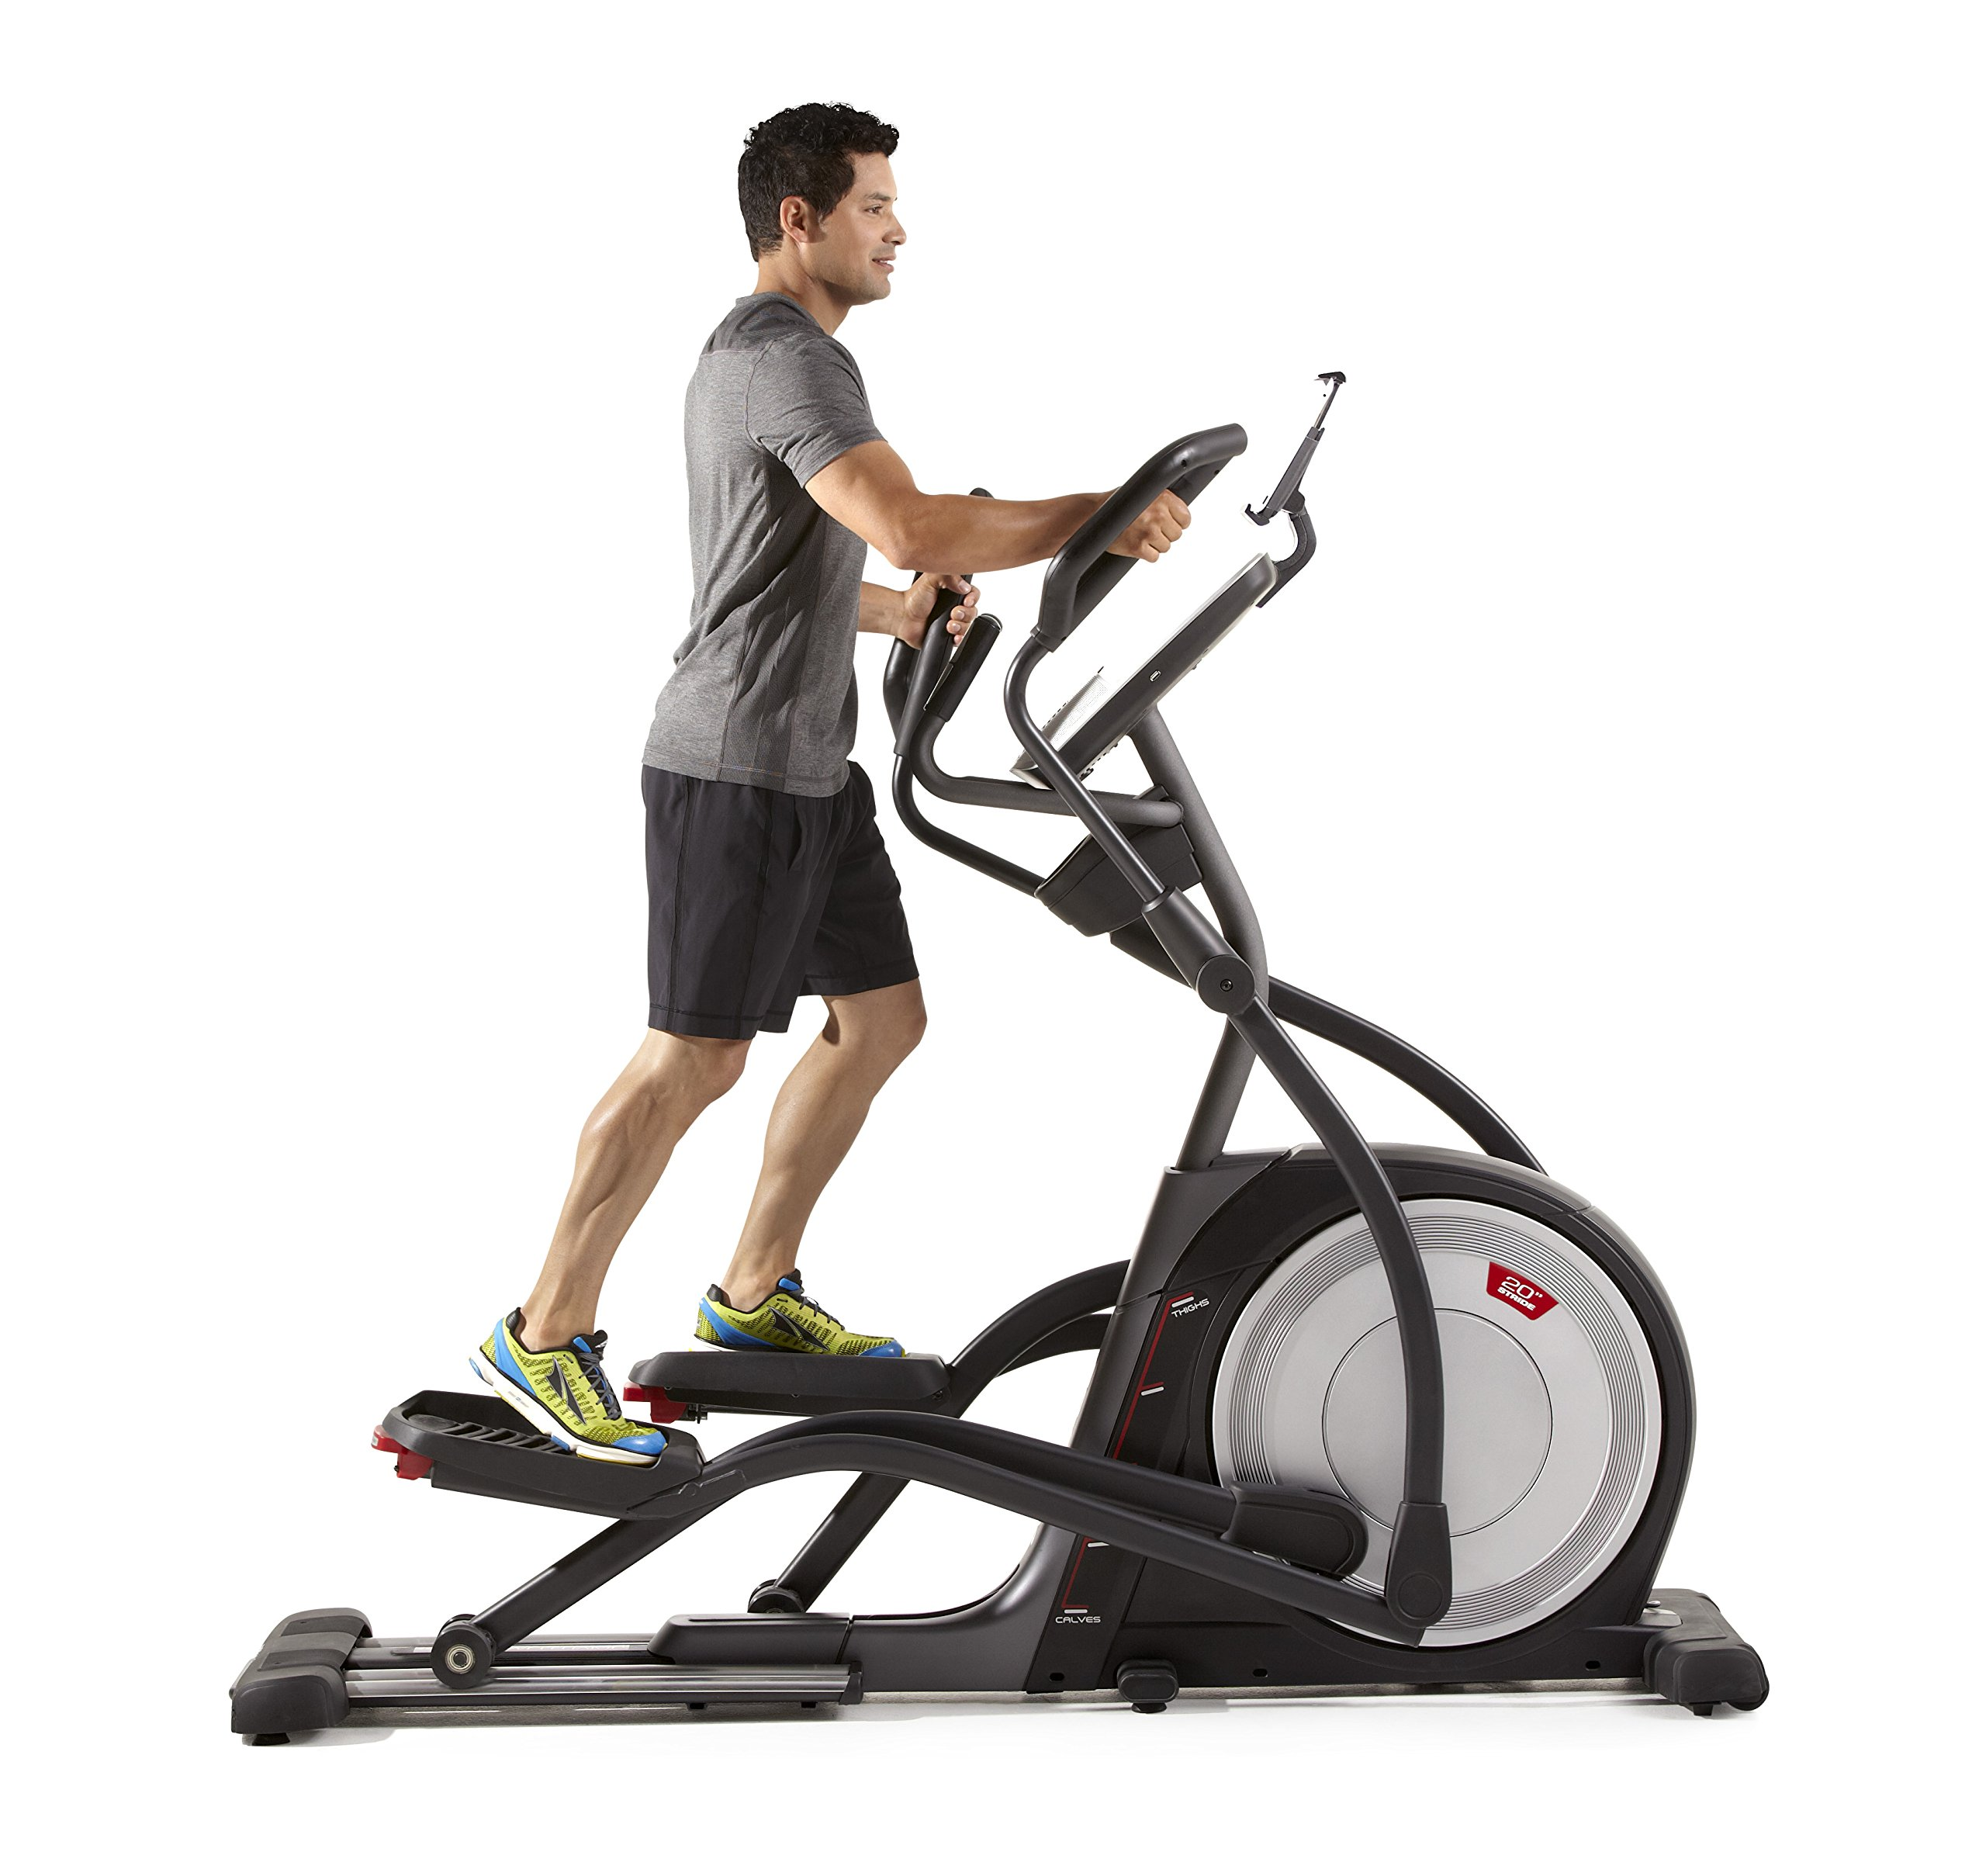 ProForm Pro 16.9 Elliptical Trainer by ProForm (Image #9)